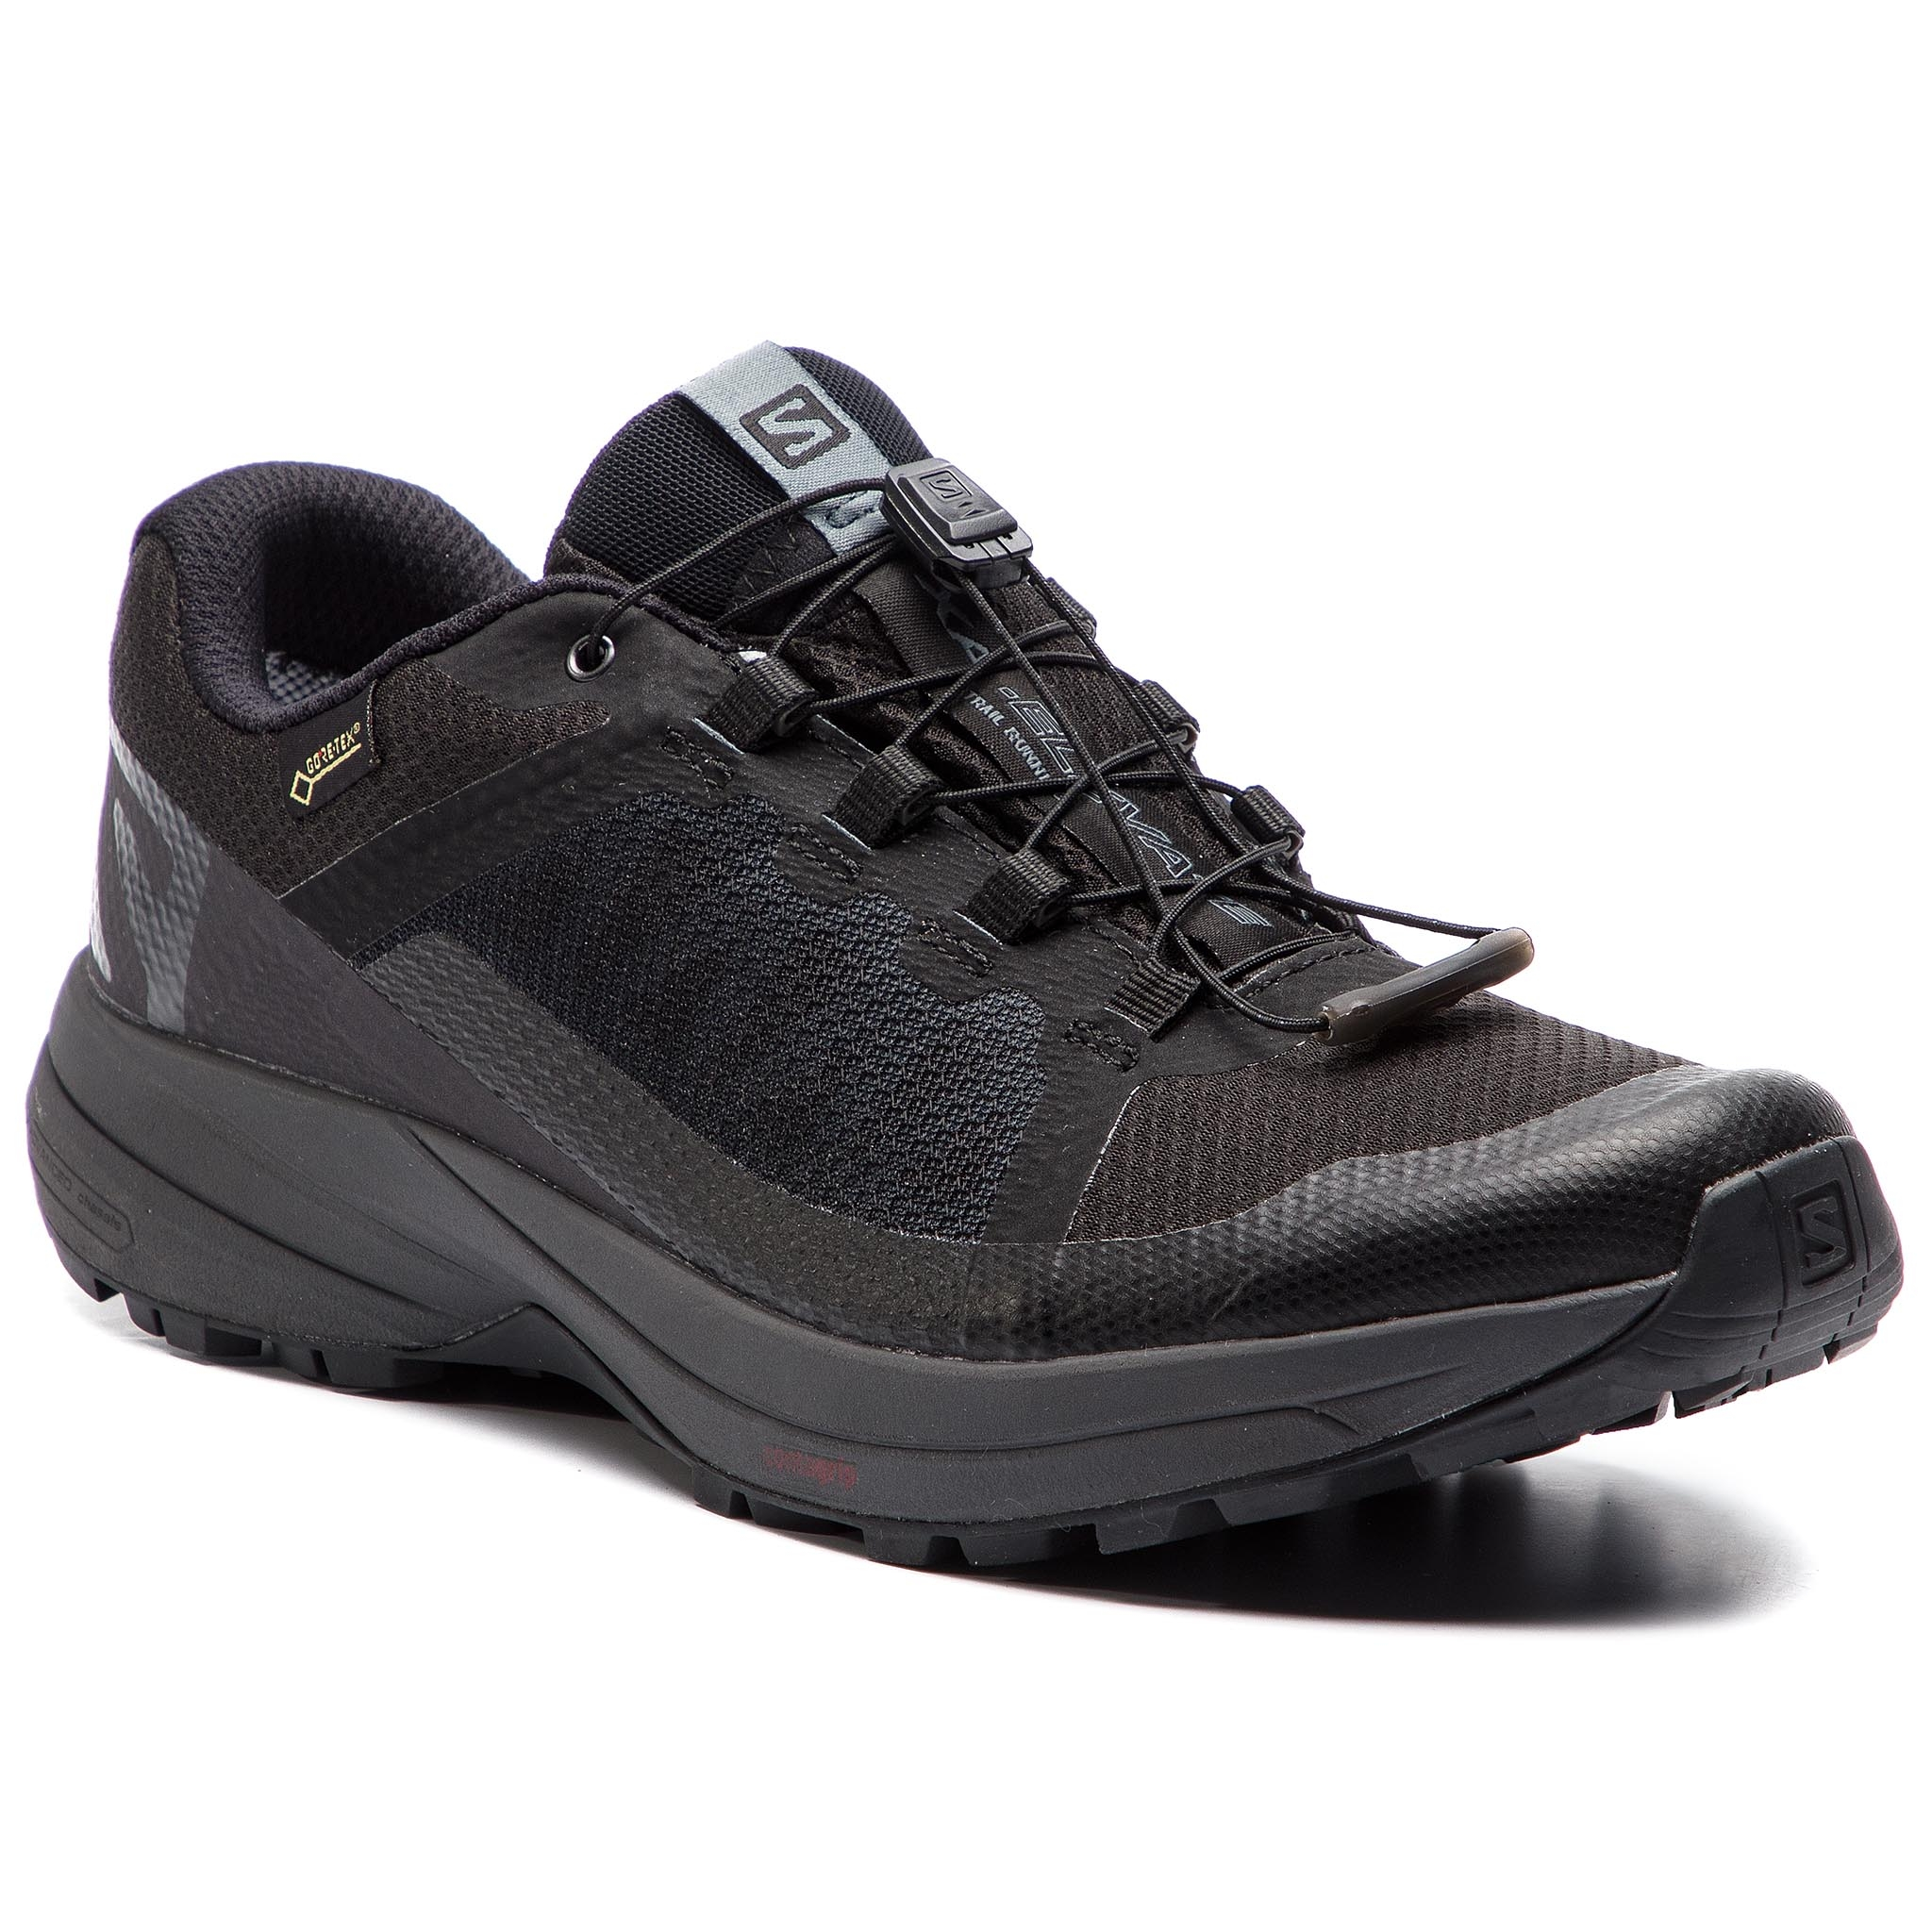 3dca4b6abd403 Boty SALOMON - Xa Elevate Gtx GORE-TEX 406597 27 V0 Black/Ebony/